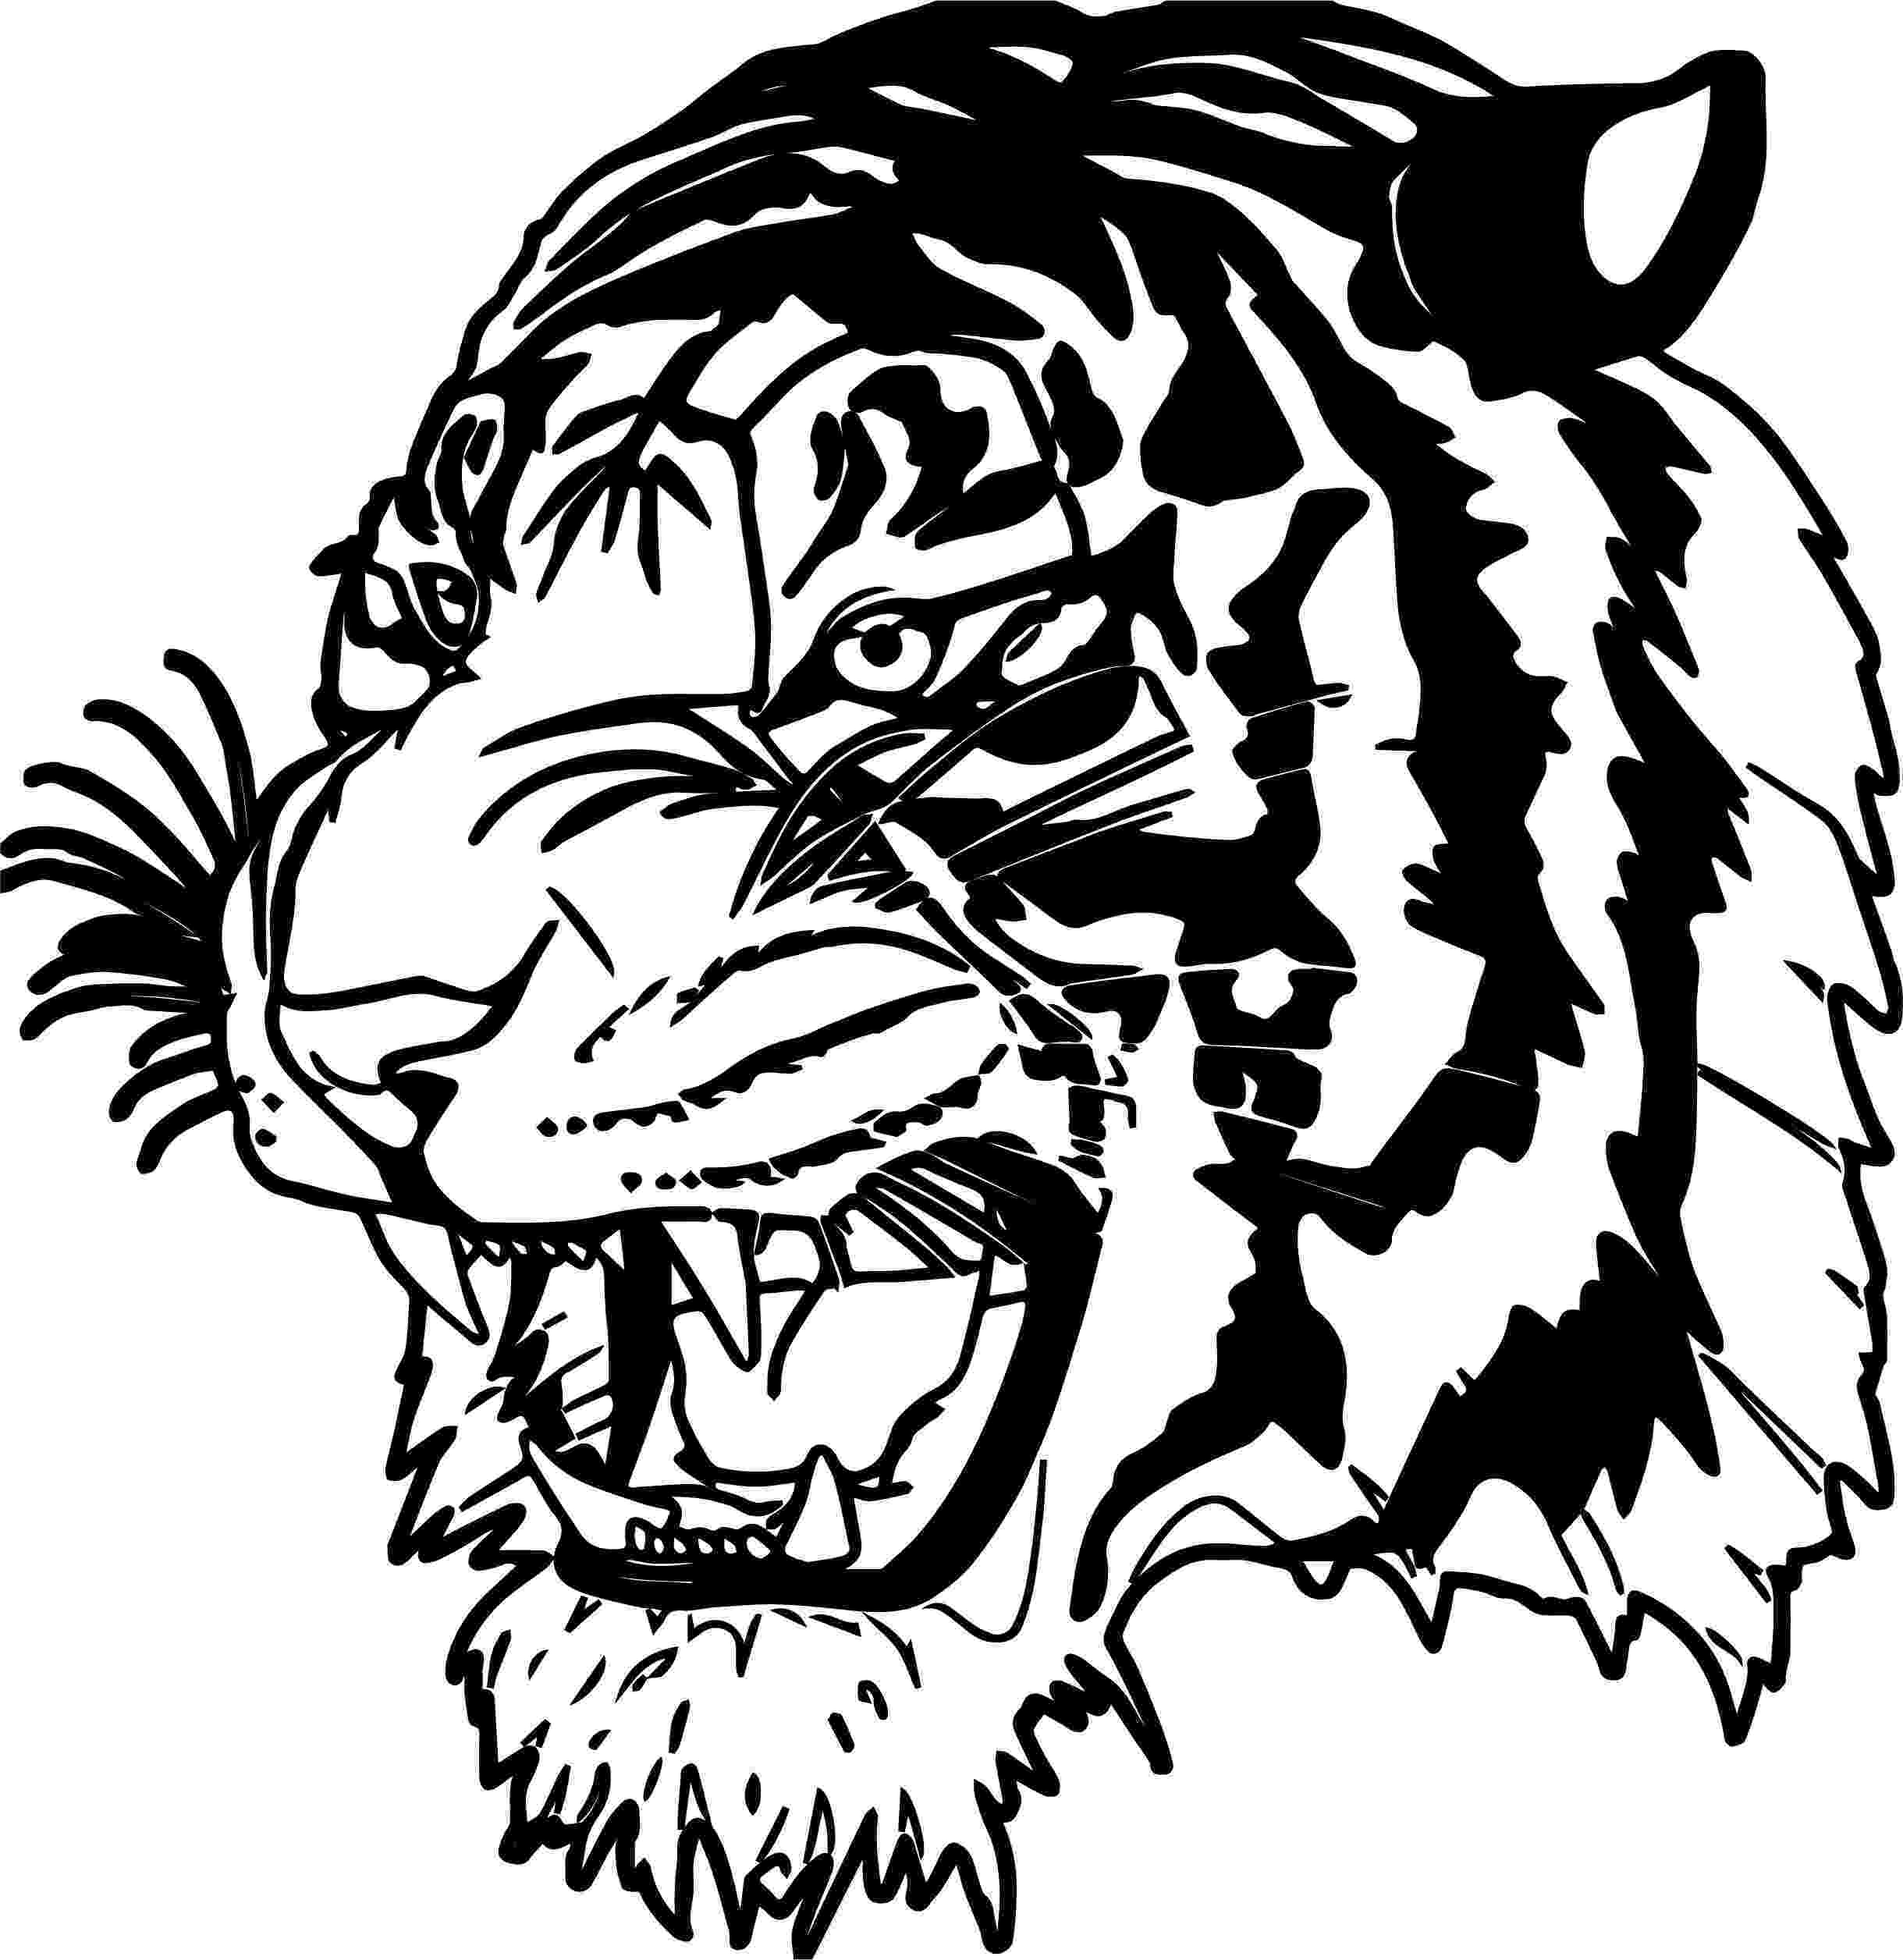 tiger face coloring page july coloring challenge eye of the tiger the coloring page tiger face coloring